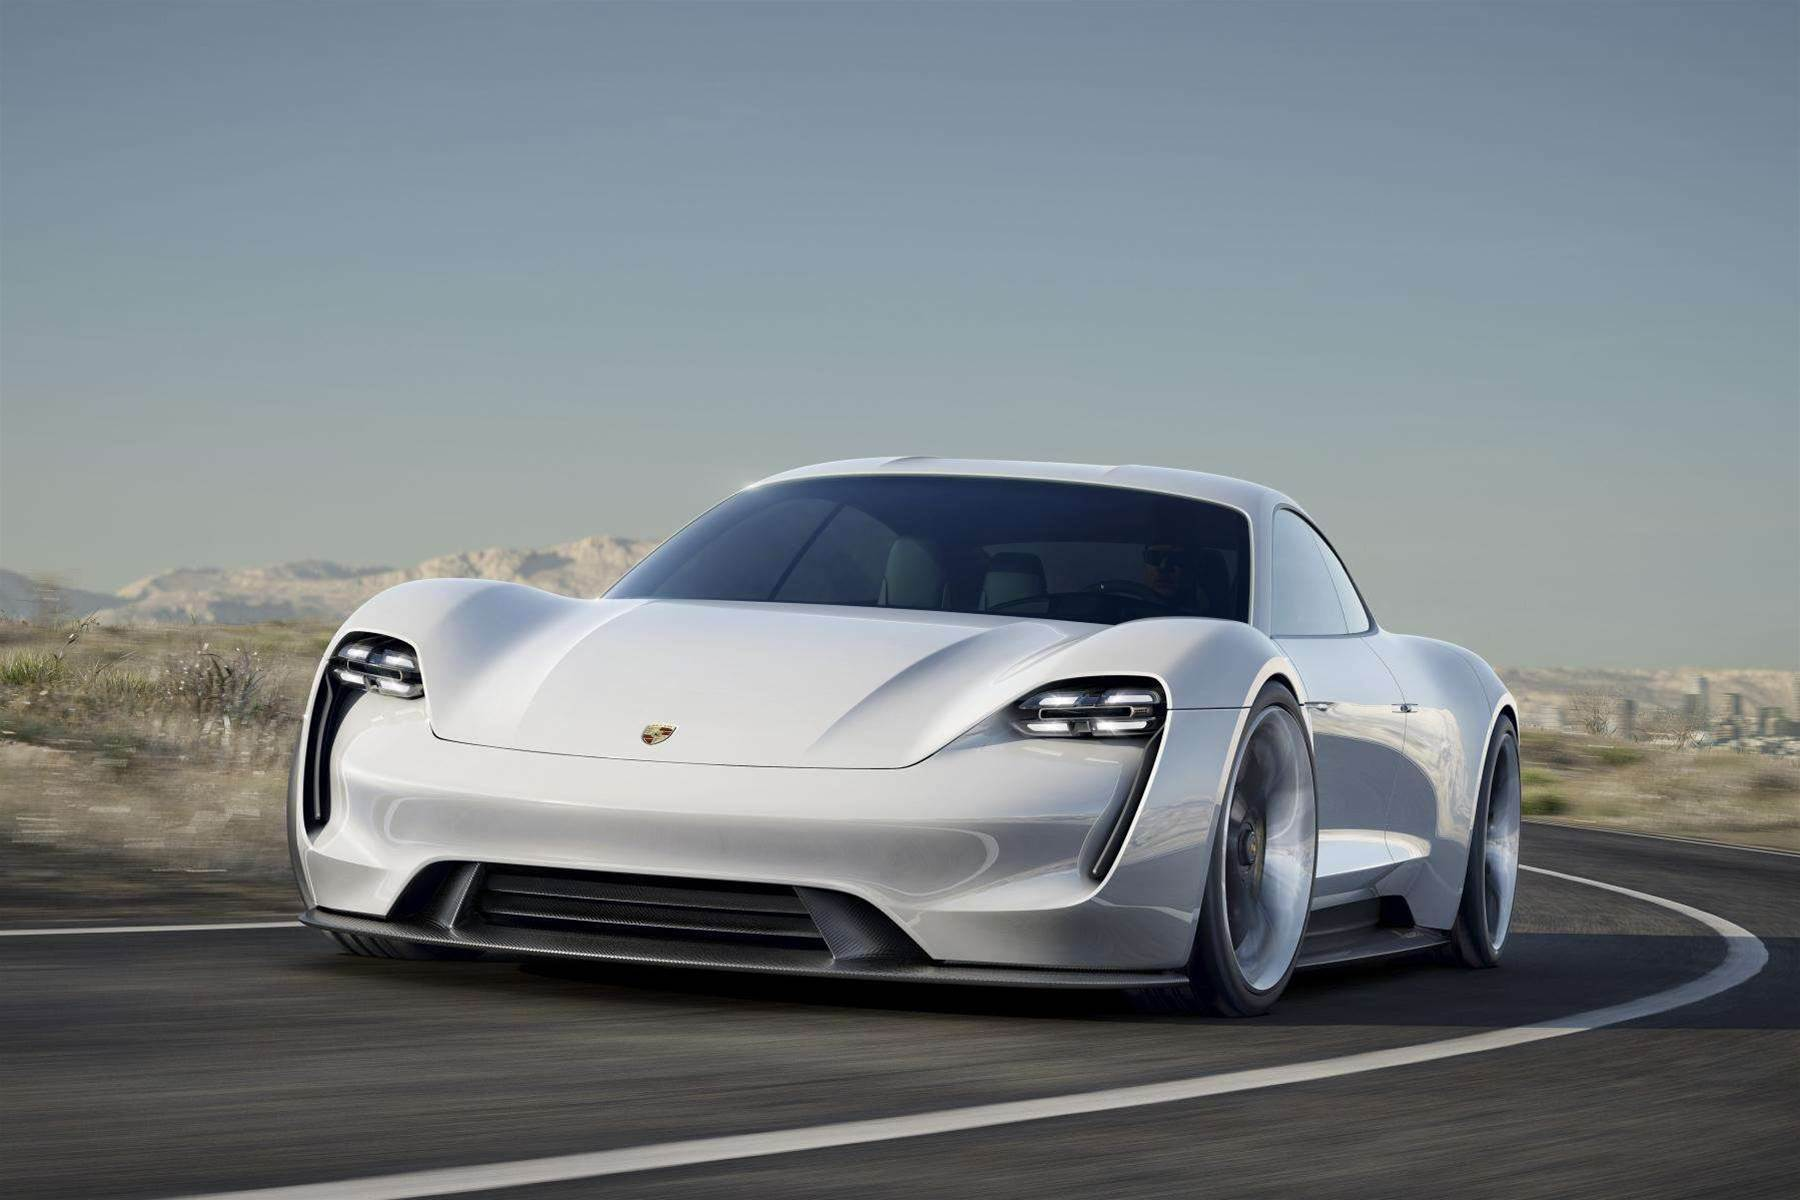 The Porsche Mission E Might Be A Concept Car, But Its 800-Volt EV Technology Is Real